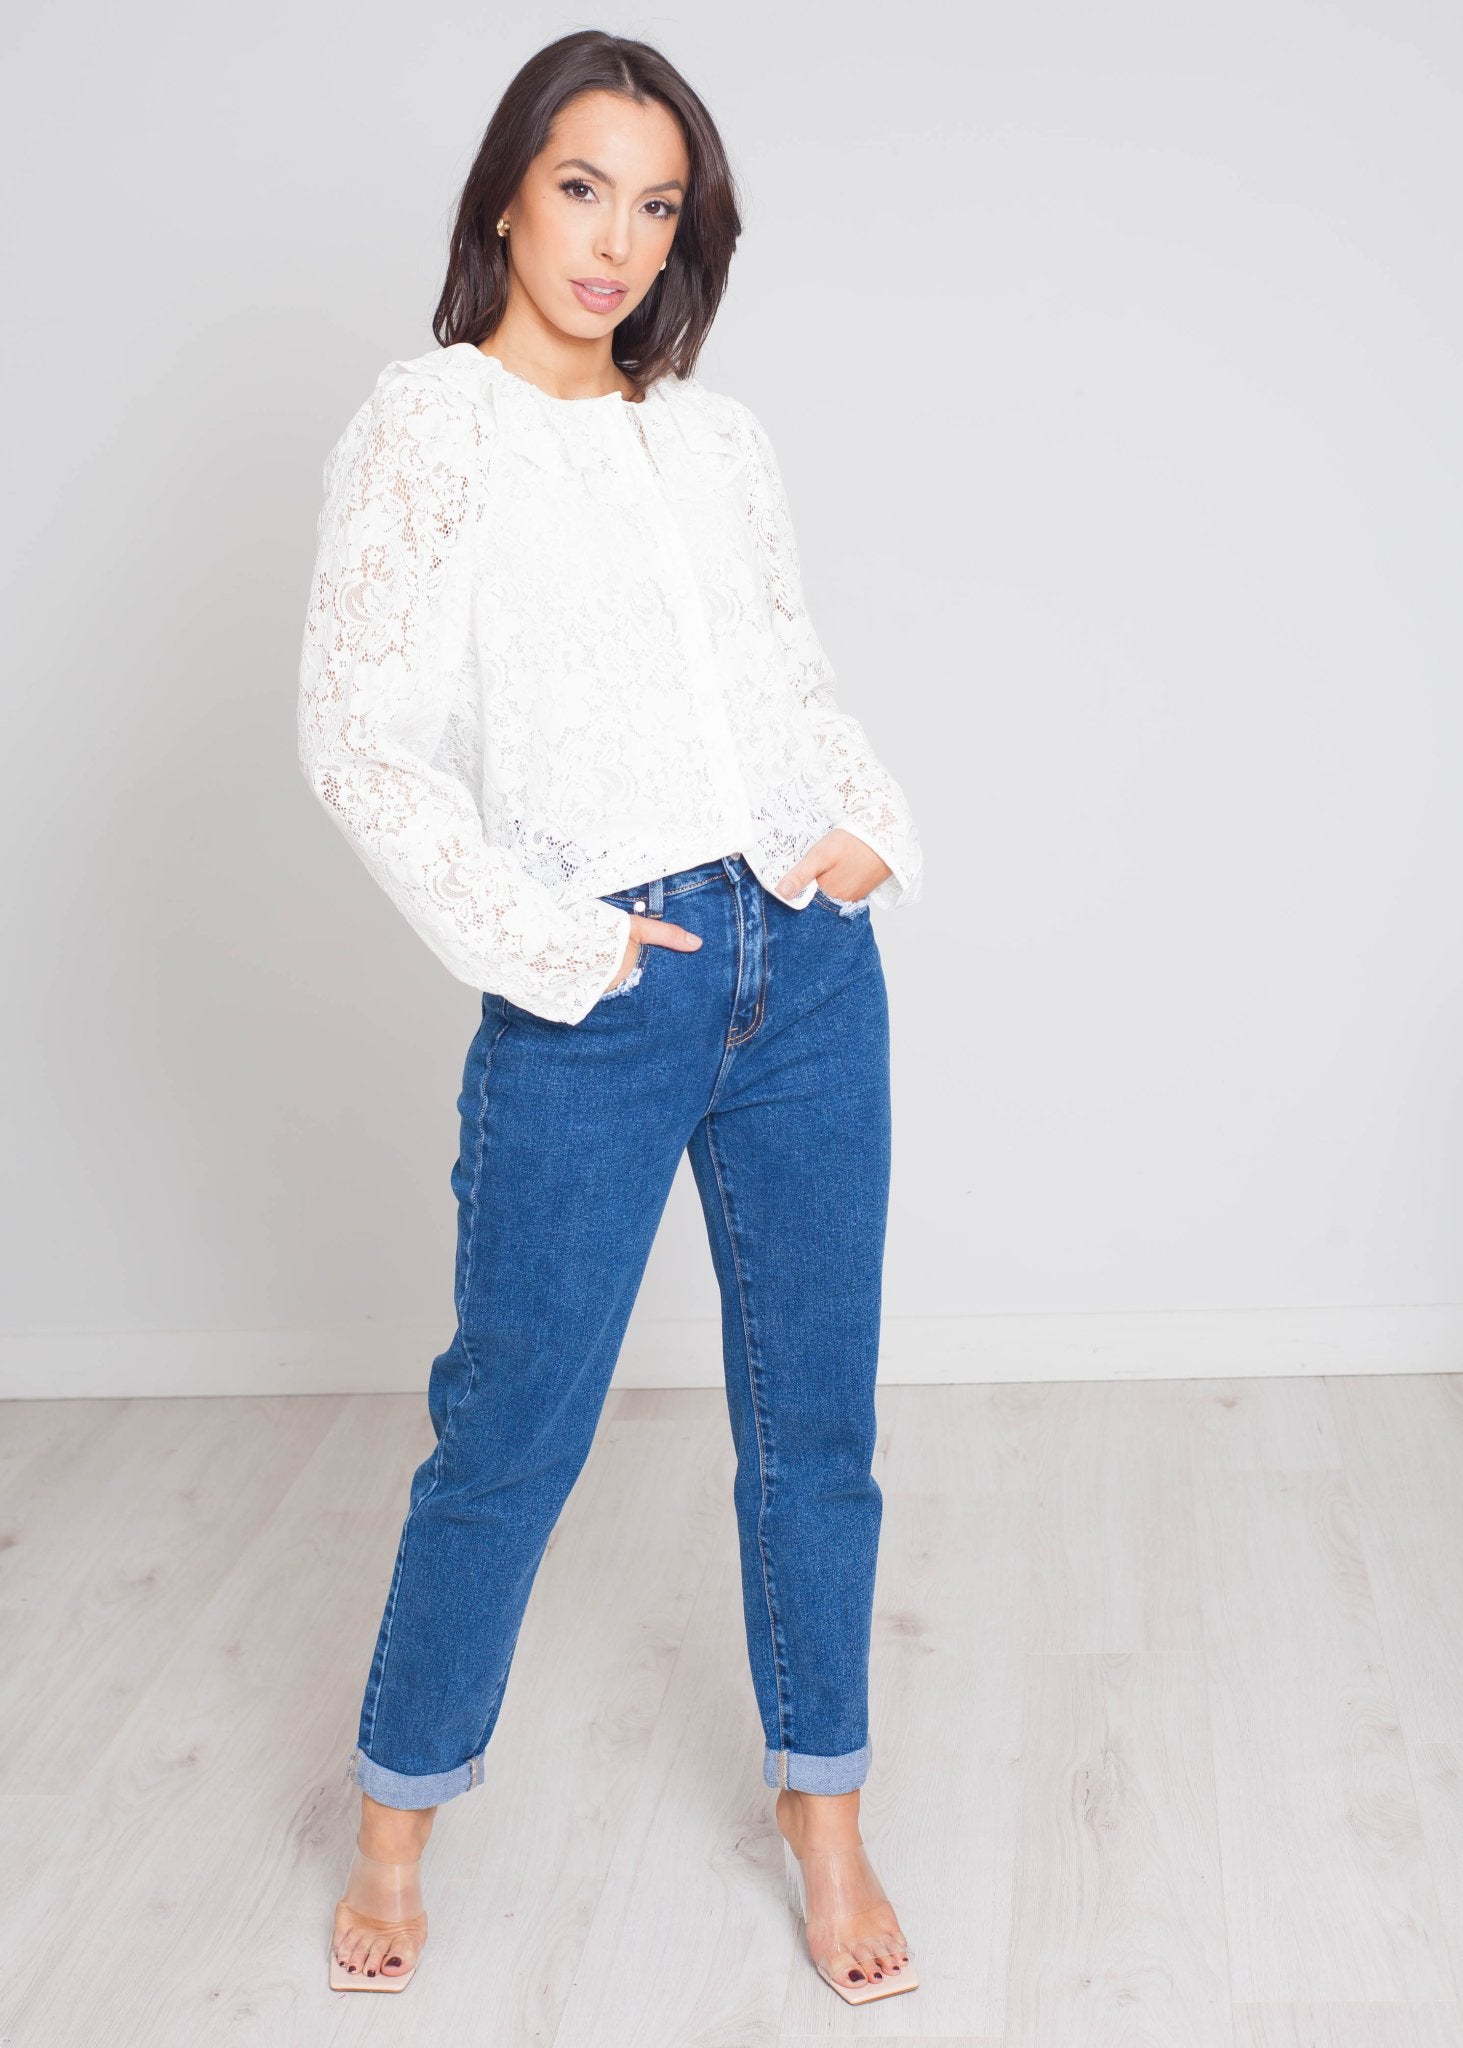 Daisy Lace Blouse In White - The Walk in Wardrobe